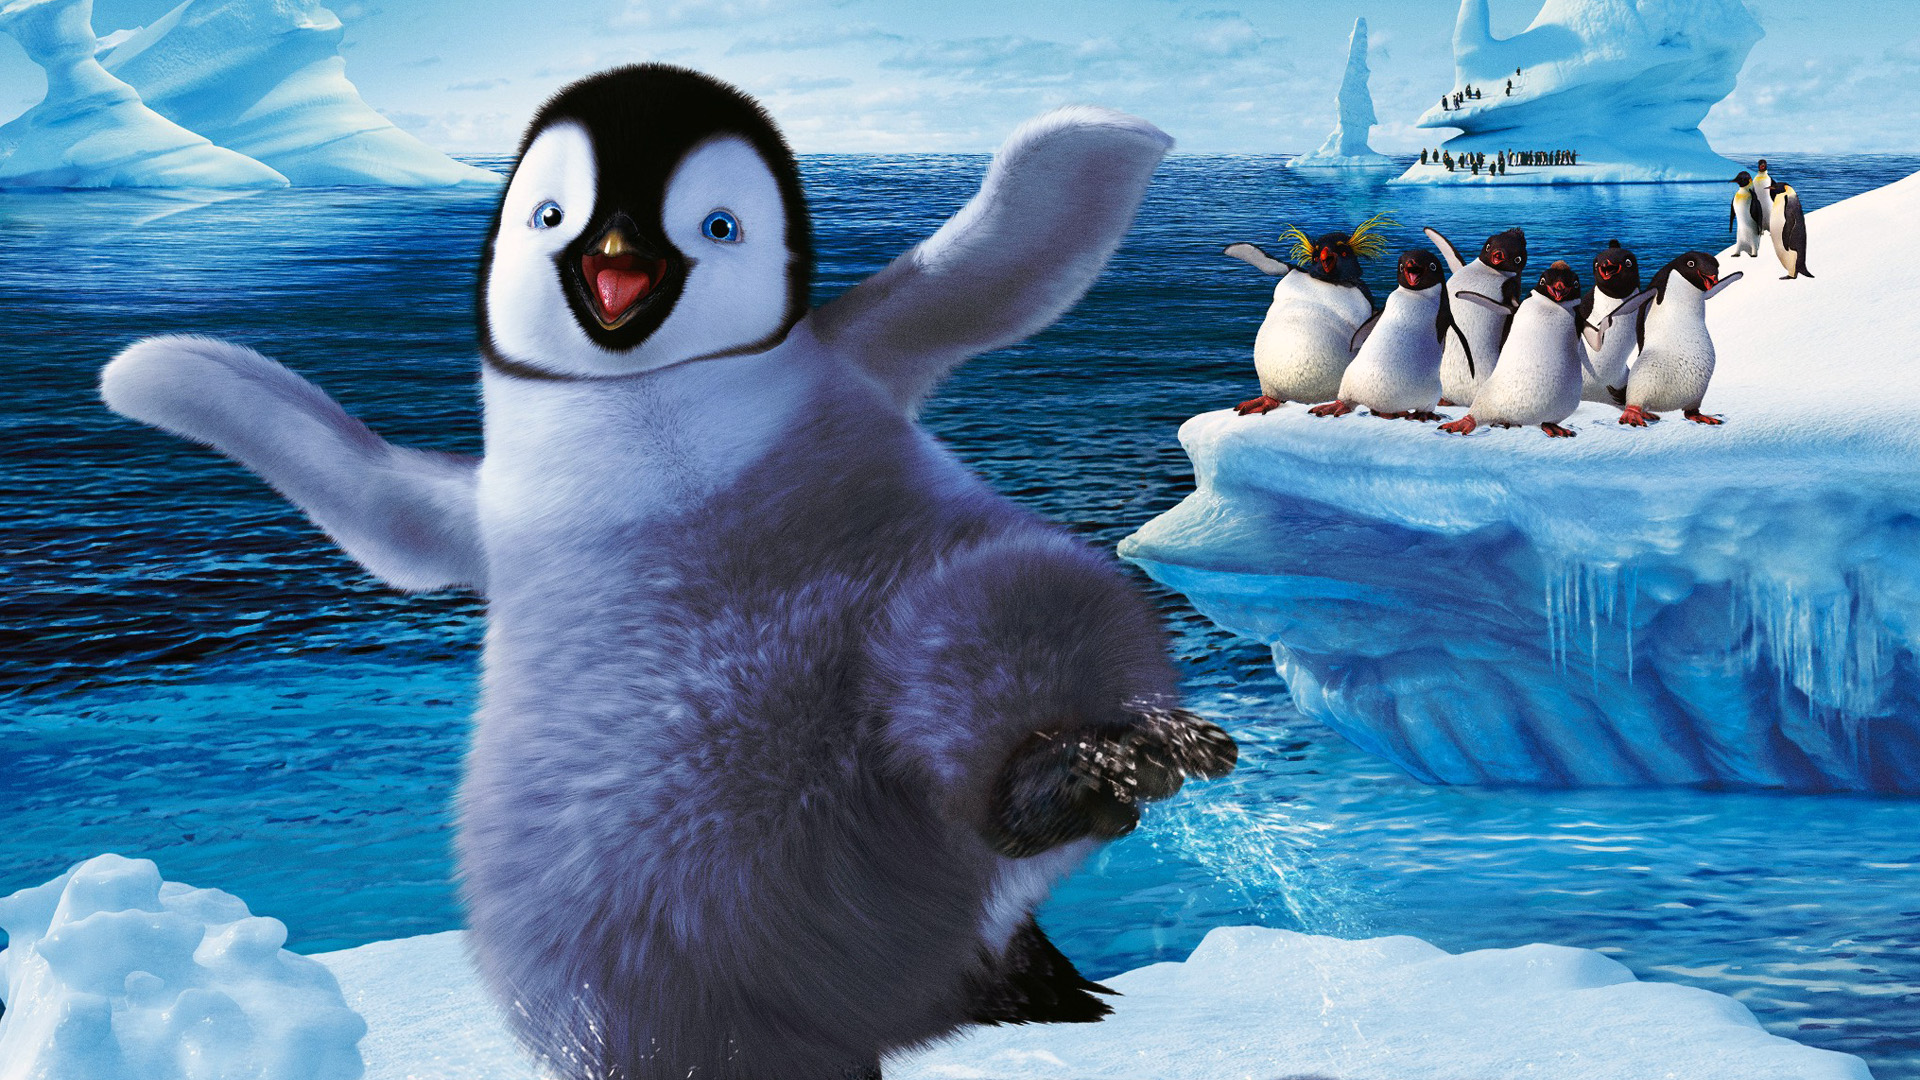 The Happy Feet 2 Wallpaper 1920x1080